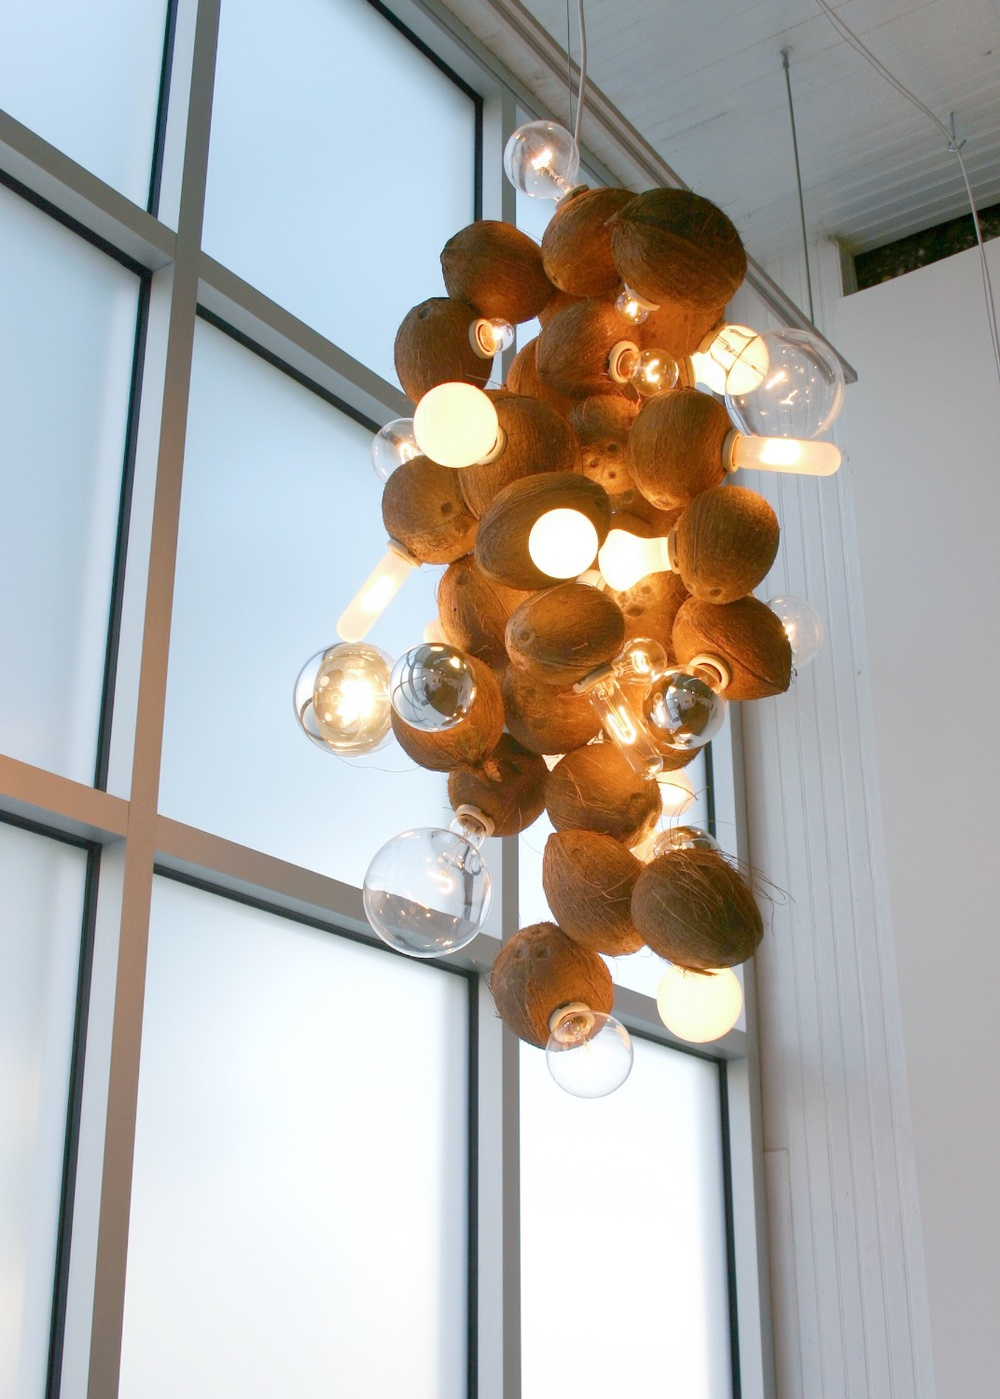 "Guyton/Walker Coconut Chandelier                               2006 Coconuts, light fixtures, light bulbs 44"" x 30"""